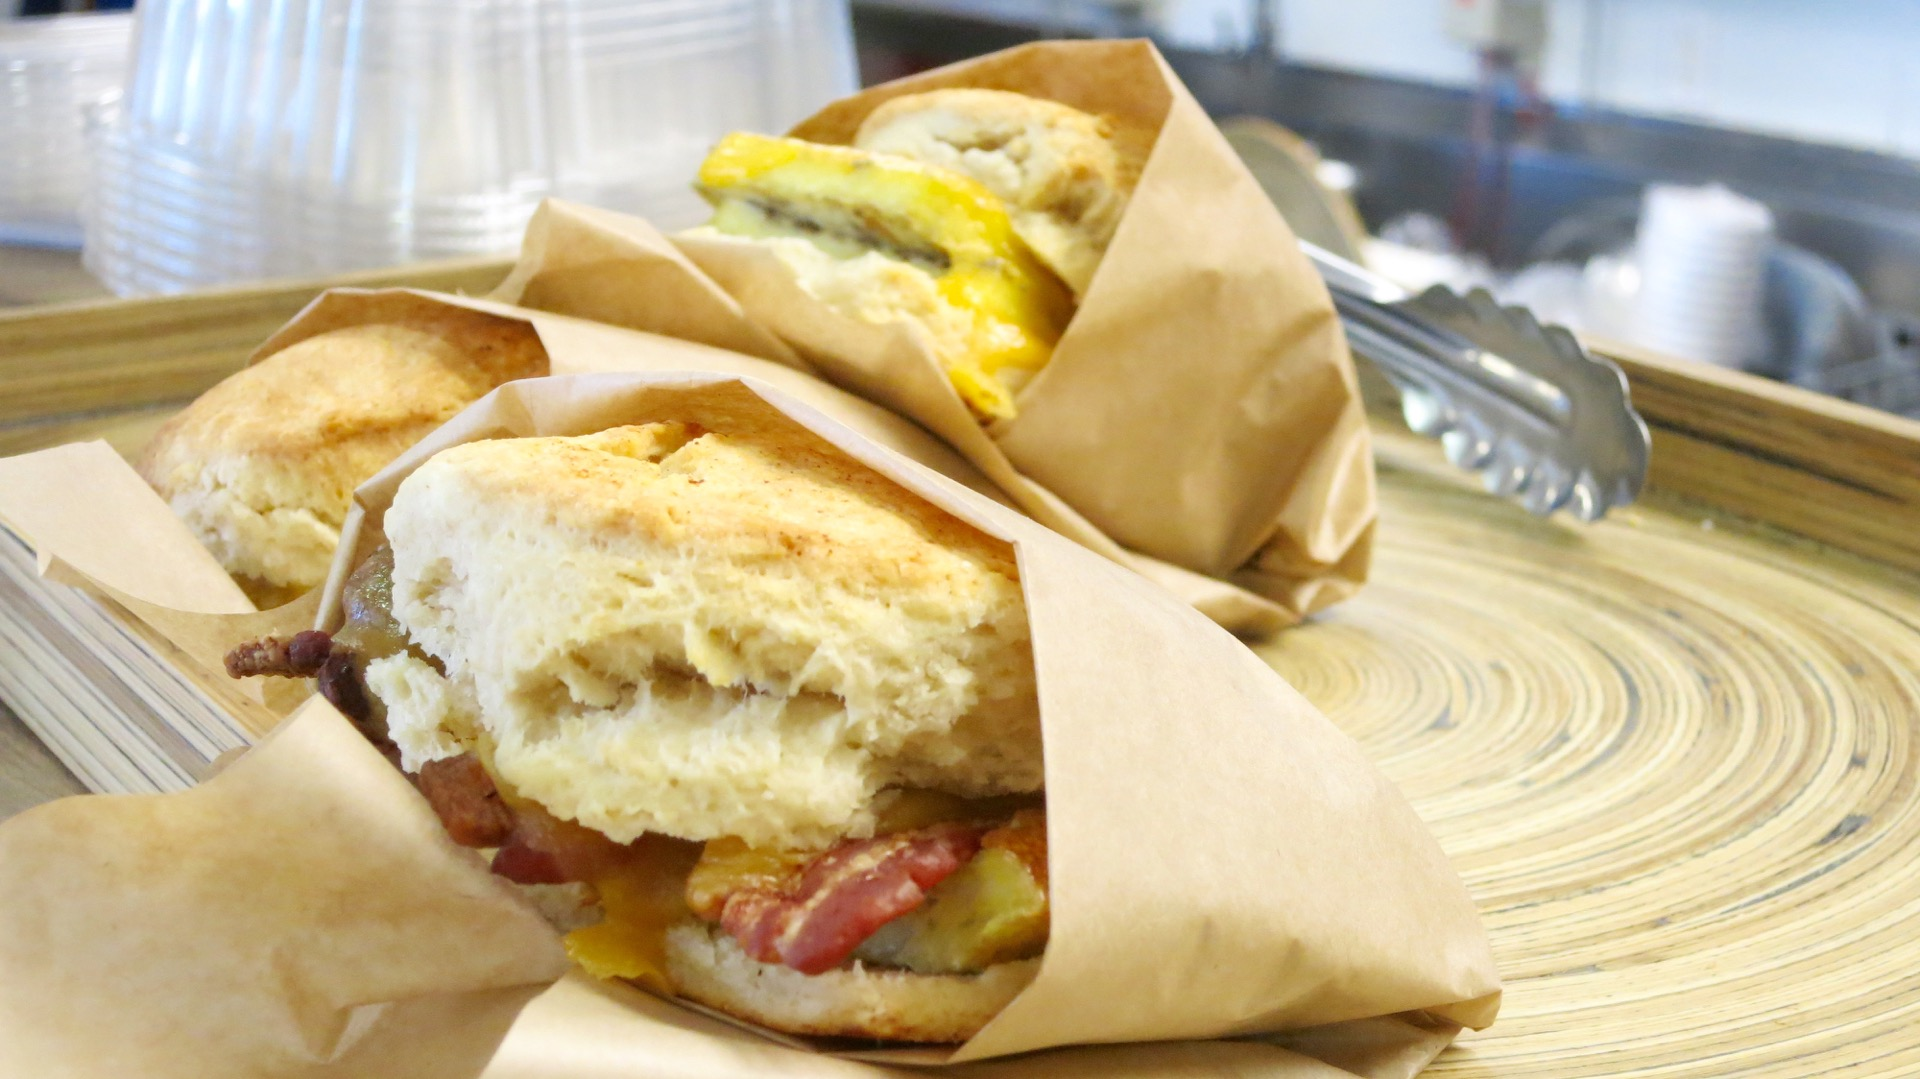 You can skip lunch as Zella's Soulful Kitchen's hearty breakfast biscuit sandwich with bacon will tide you over until dinnertime.